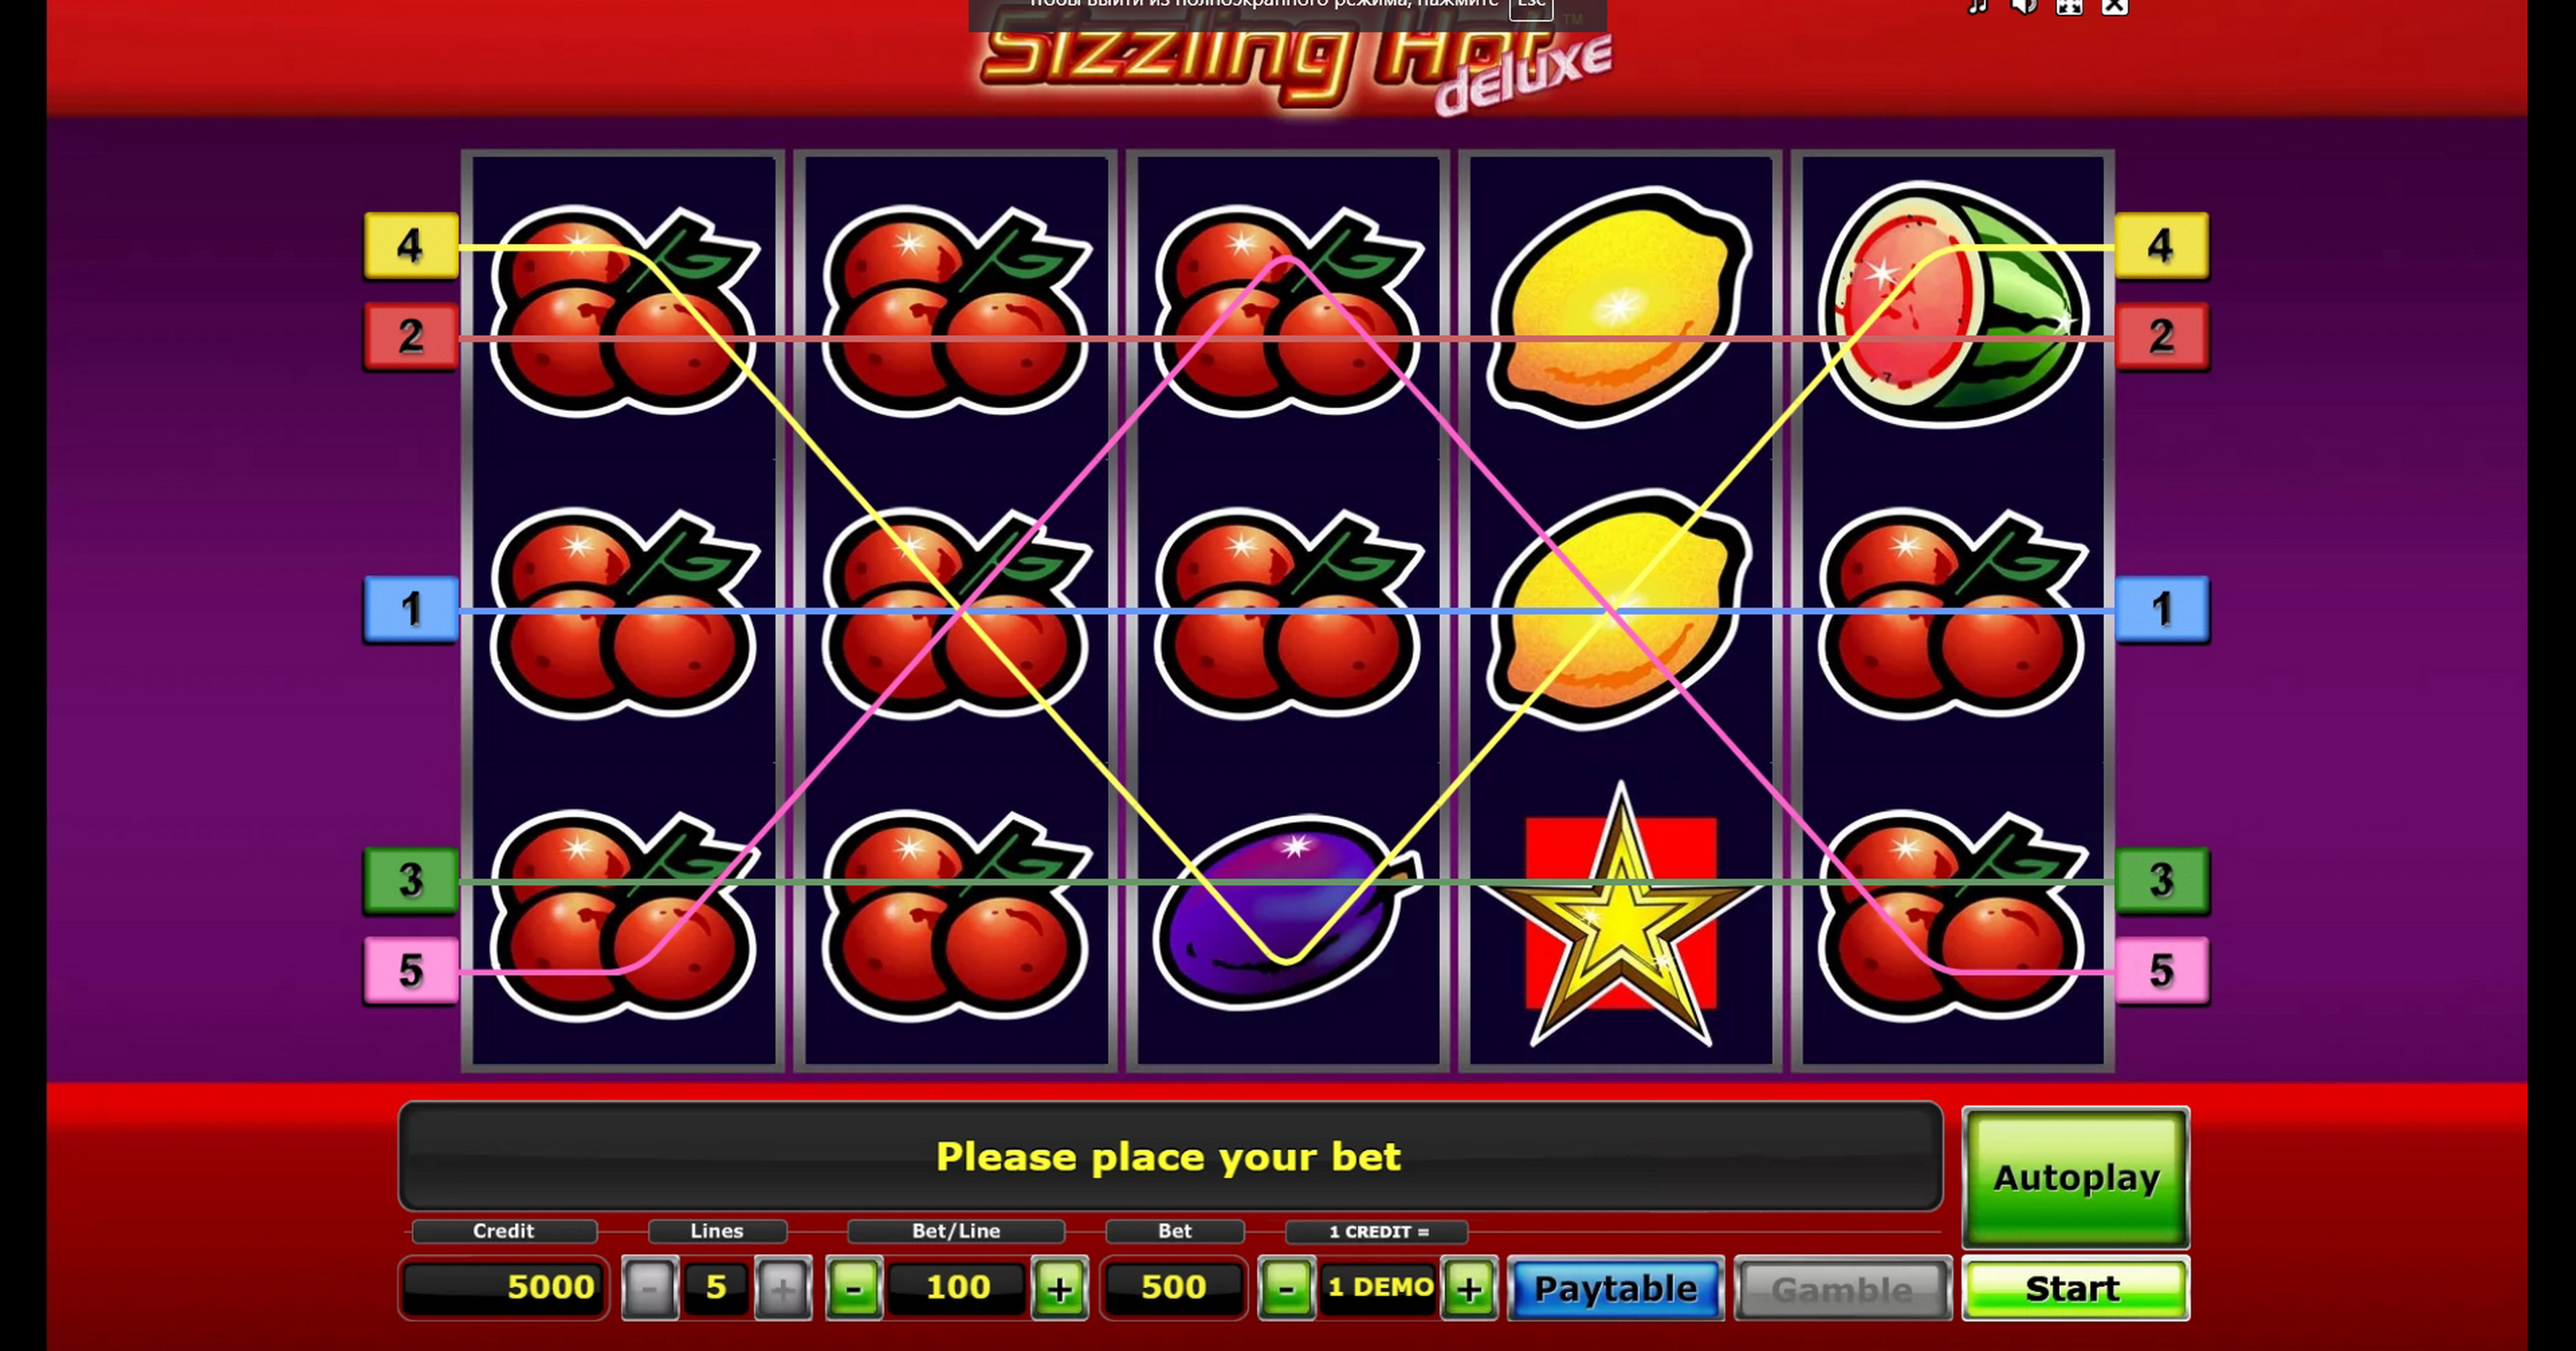 Play Sizzling Hot deluxe Free Casino Slot Game by Greentube